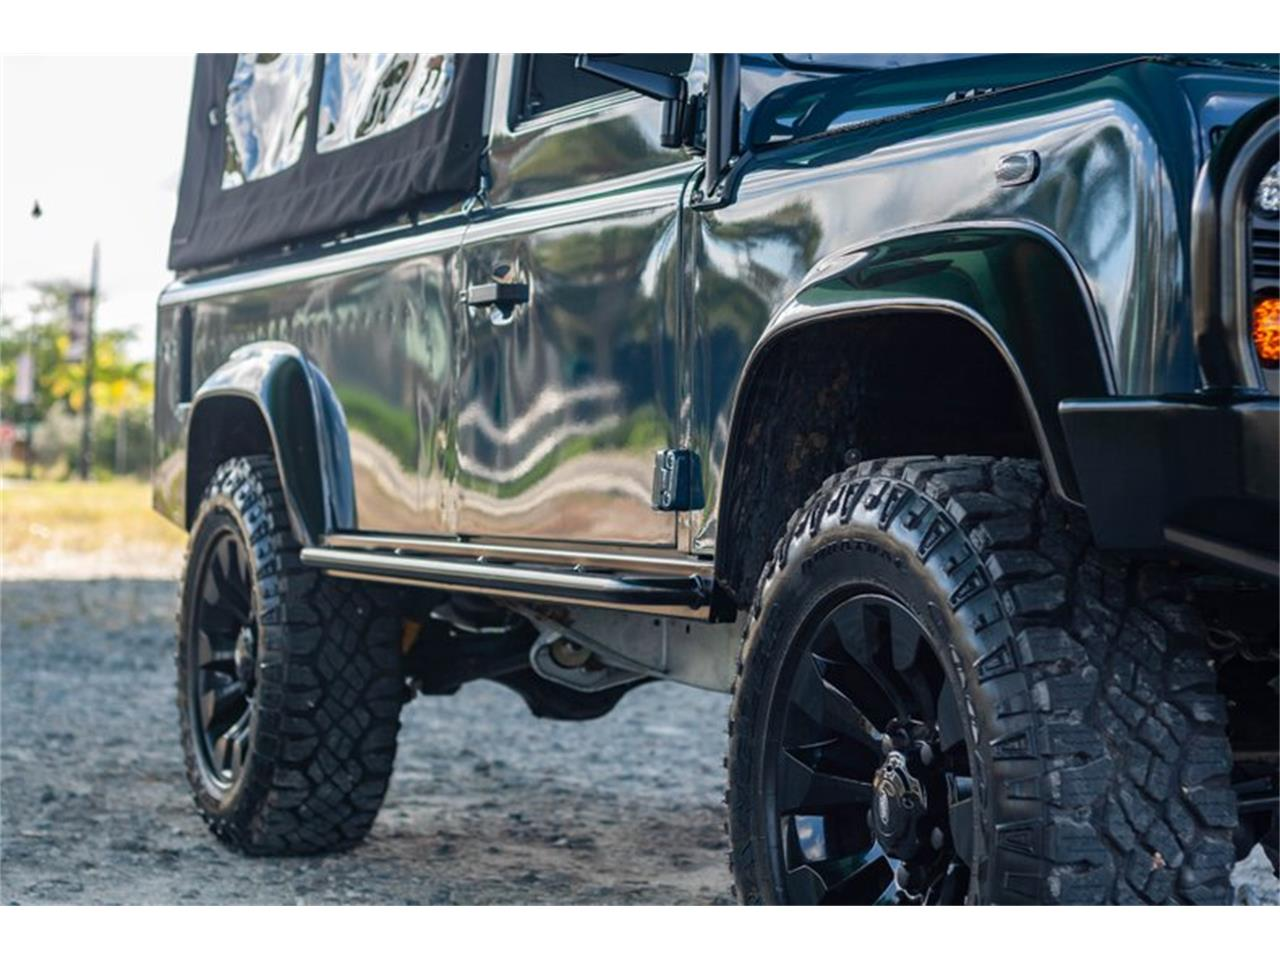 1997 Land Rover Defender for sale in Delray Beach, FL – photo 80